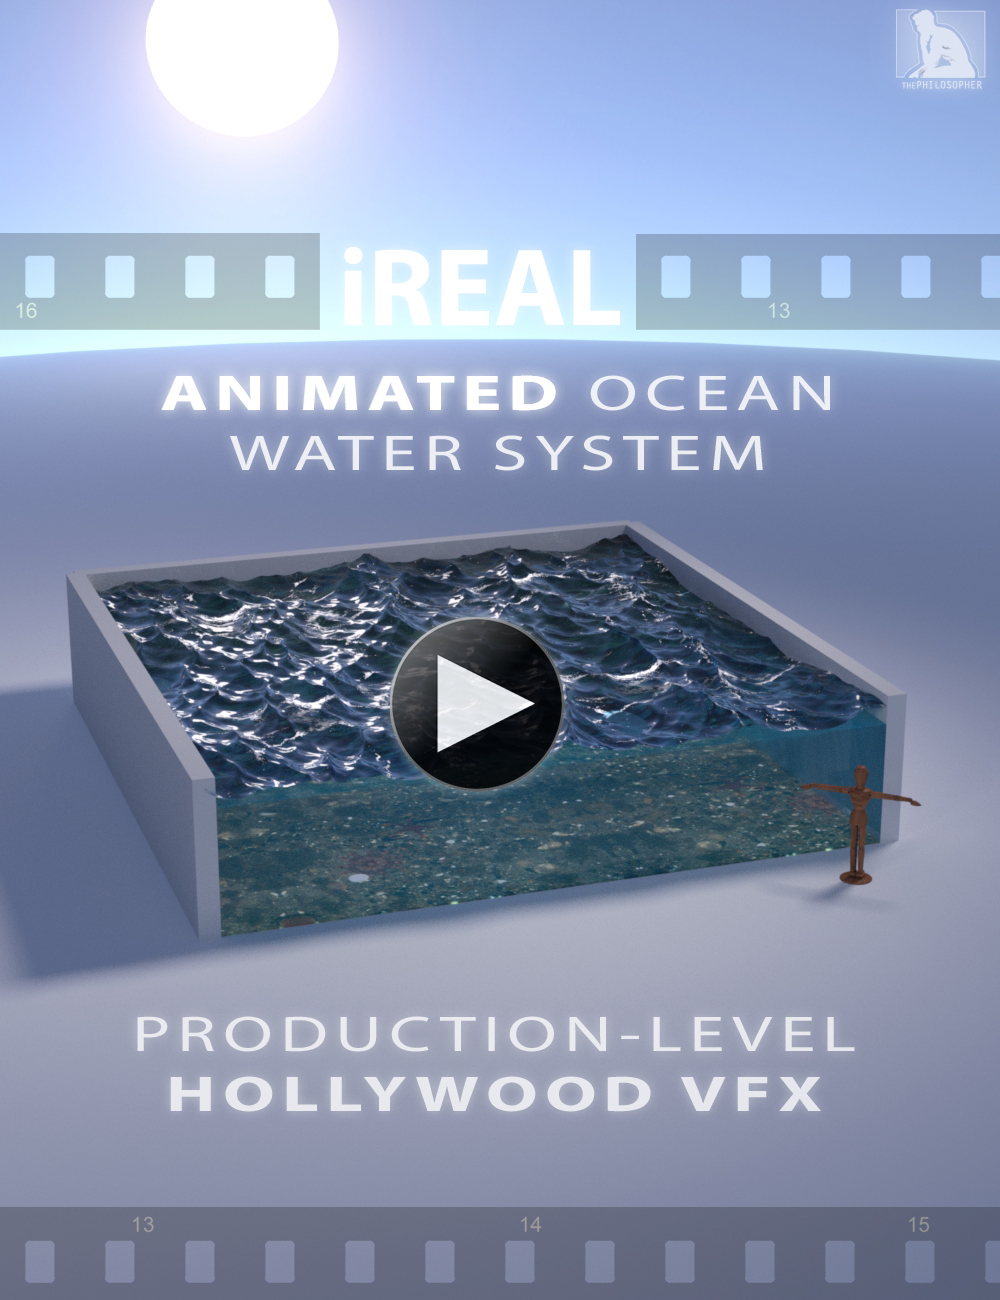 iREAL Animated Ocean Water System by: ThePhilosopher, 3D Models by Daz 3D